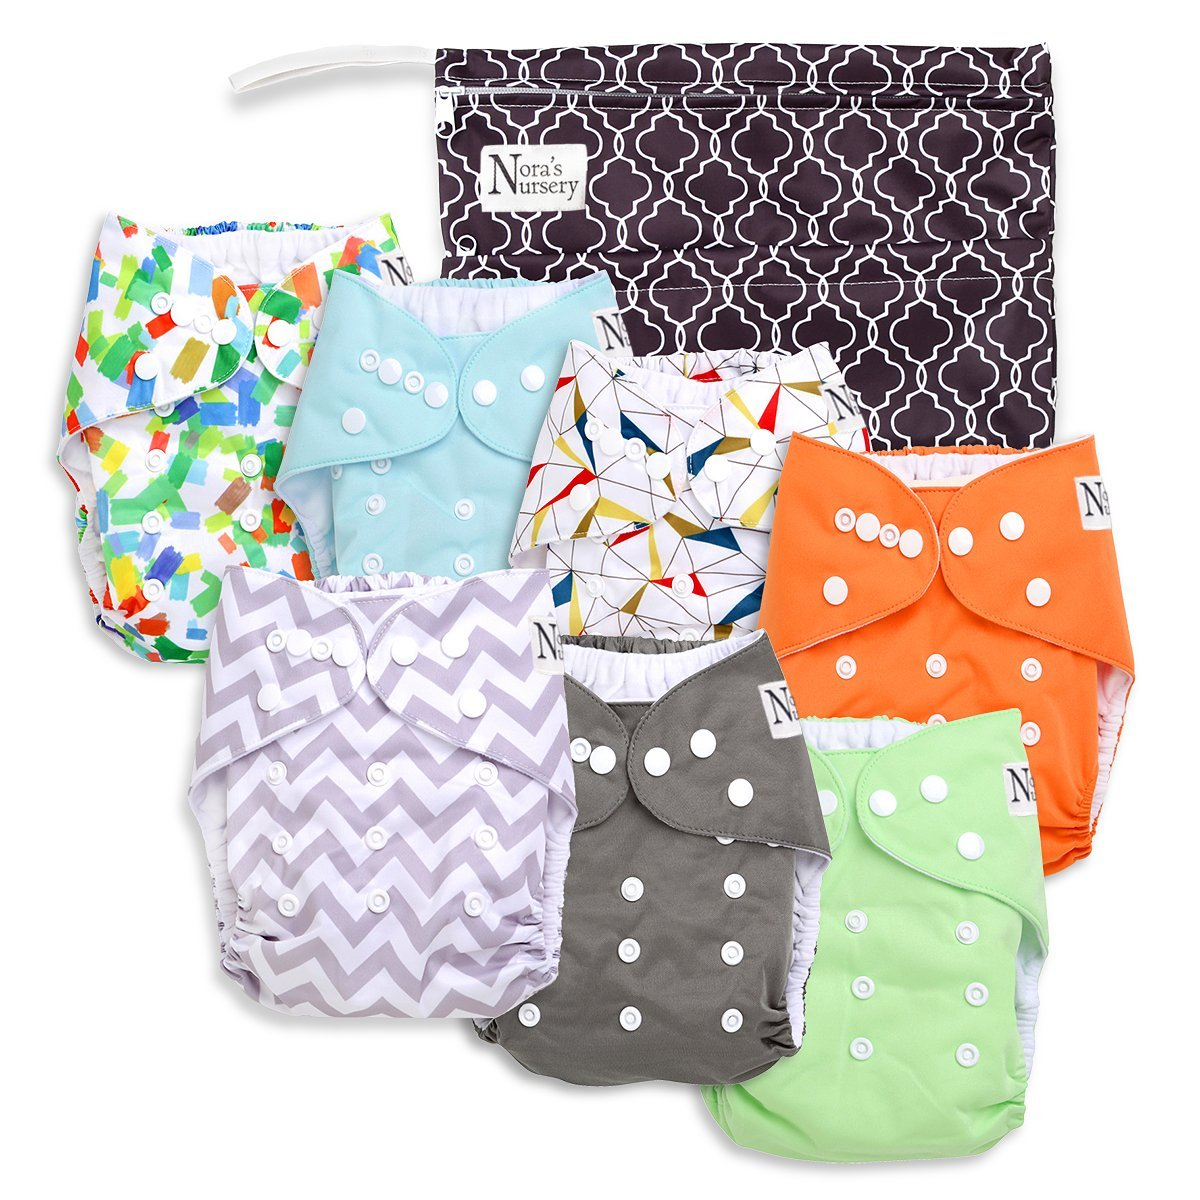 Types of Diapers: Cloth Diapers vs Disposable Diapers